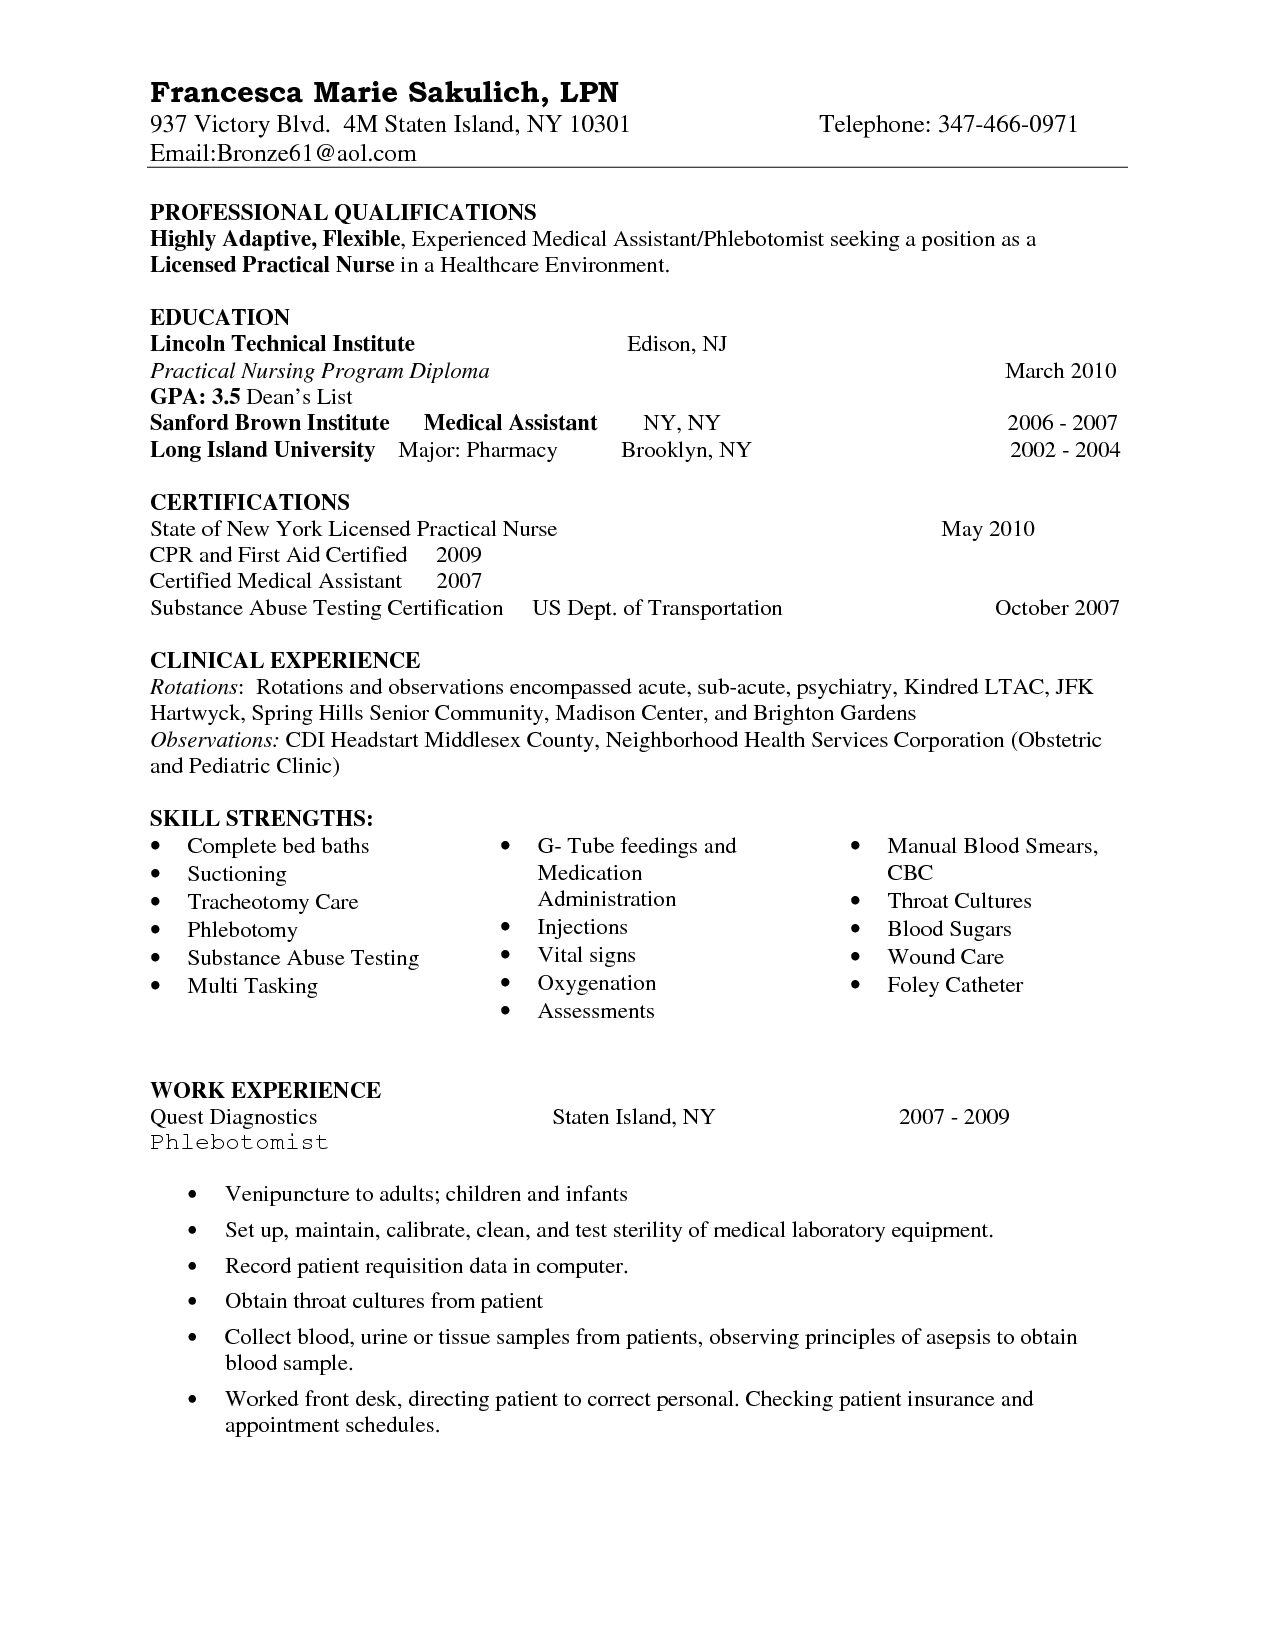 Lpn Resume Template Free Entry Level Lpn Resume Sample Nursing Pinterest